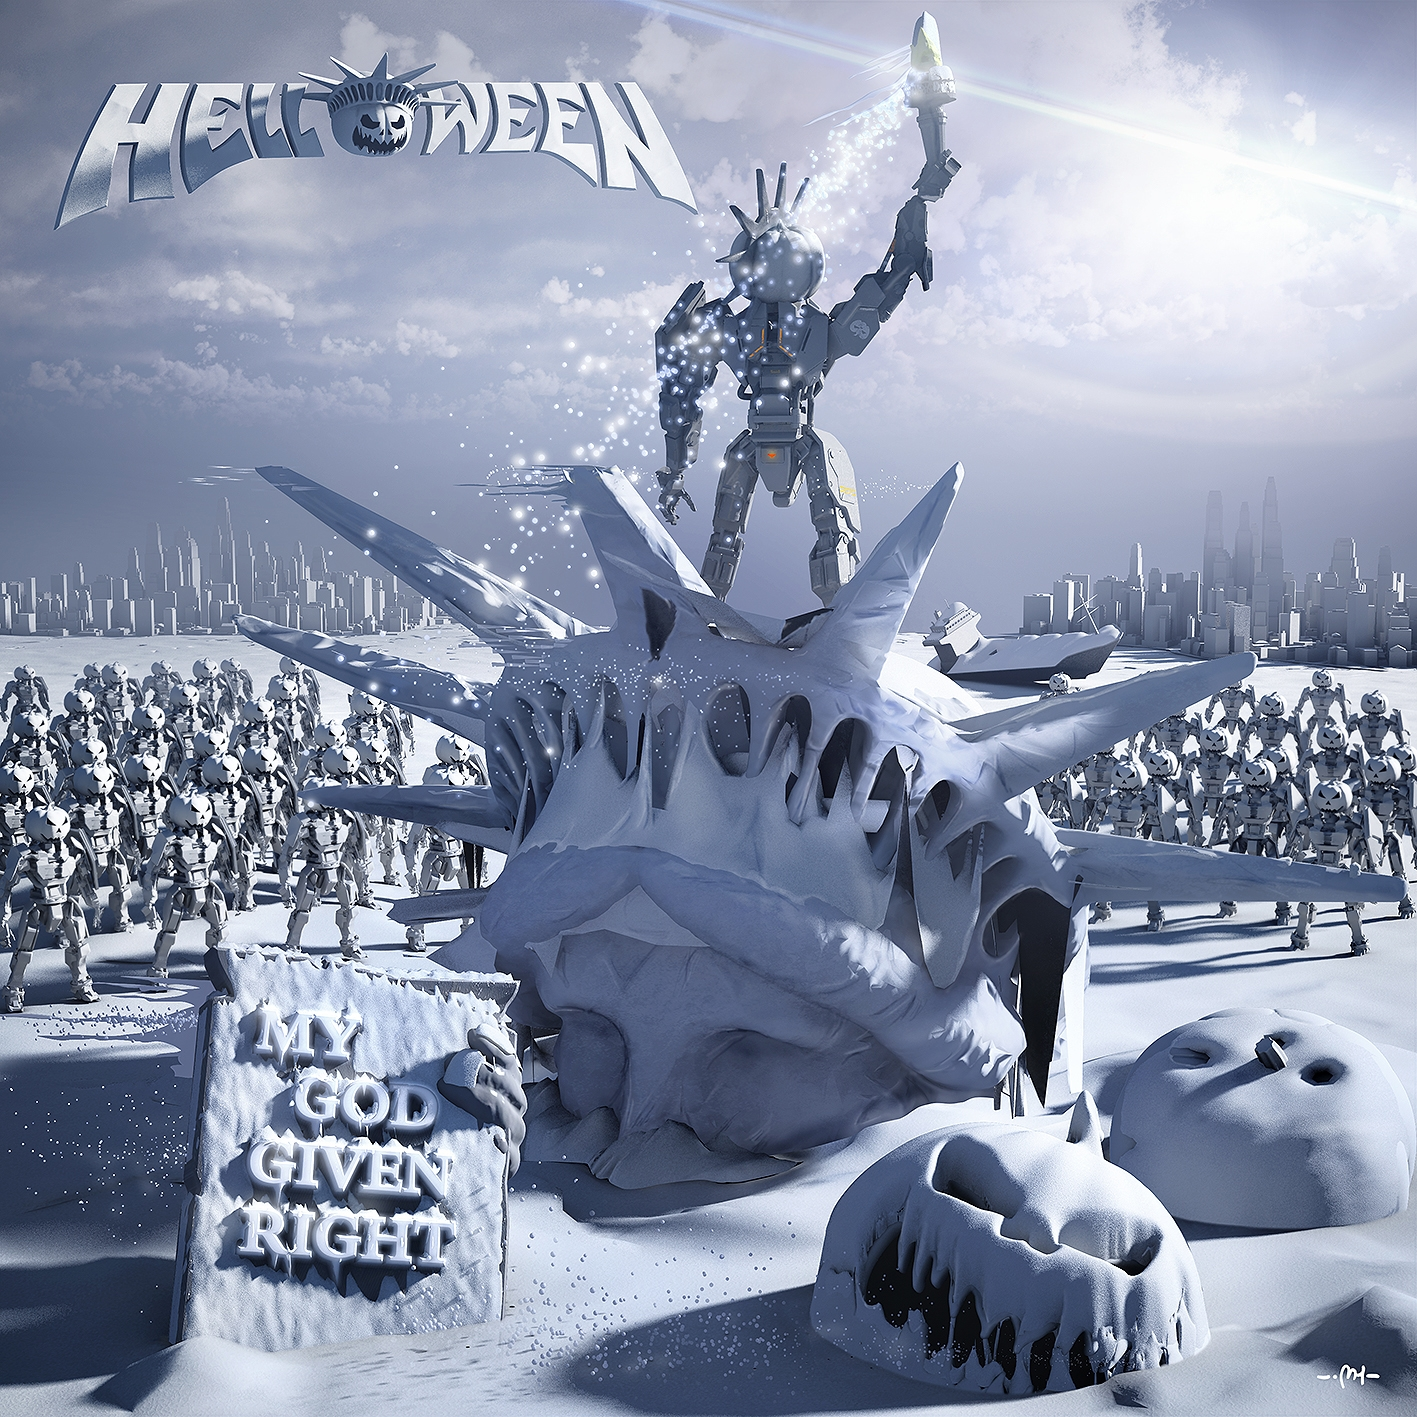 Helloween – My God-Given Right Review